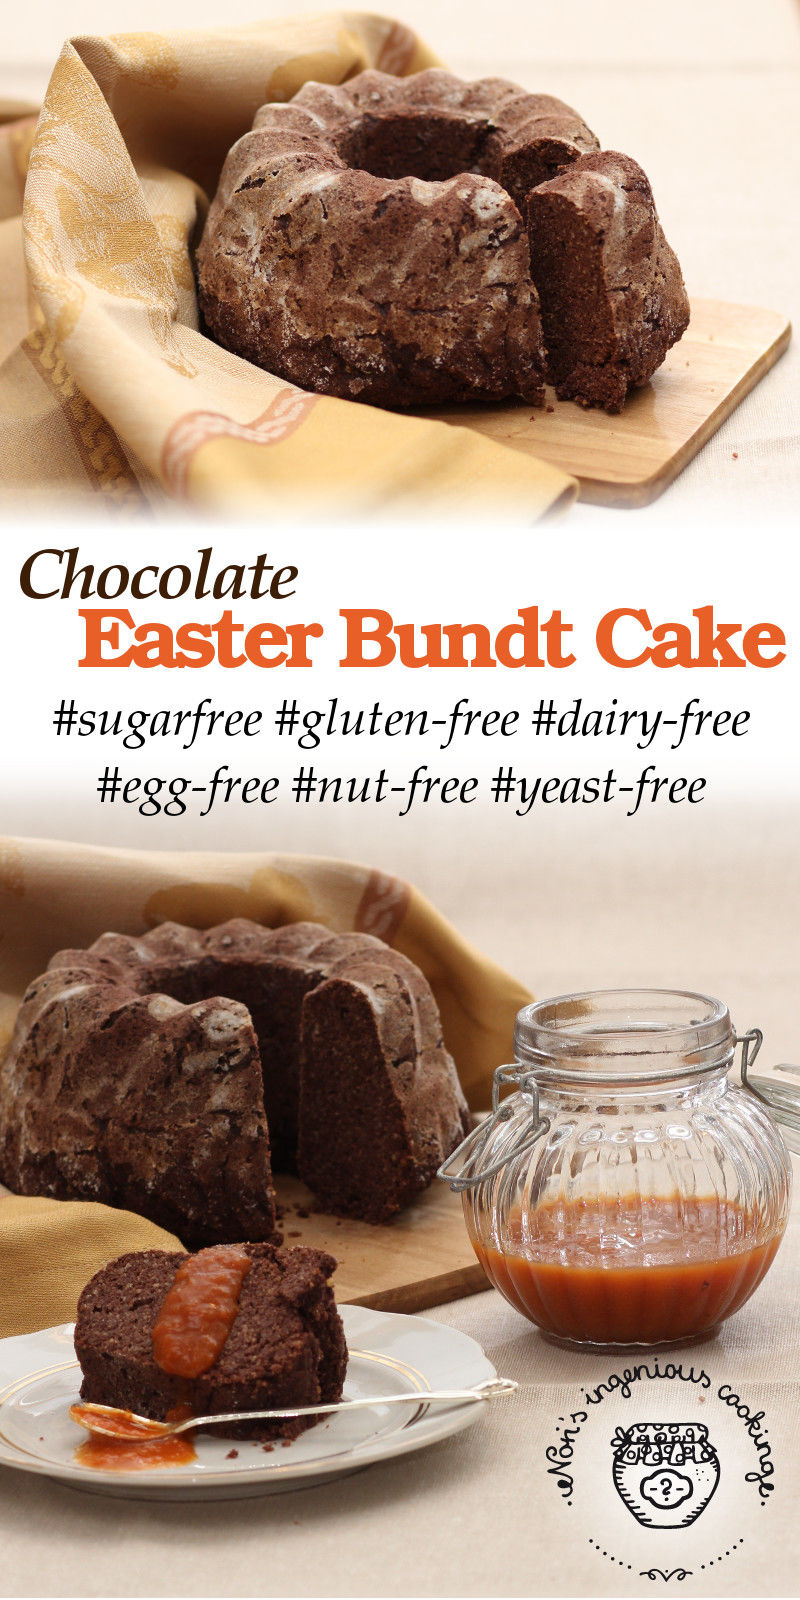 Easter bundt cake, reinvented the allergy friendly way: sugar-, gluten-, dairy- and egg-free, vegan recipe